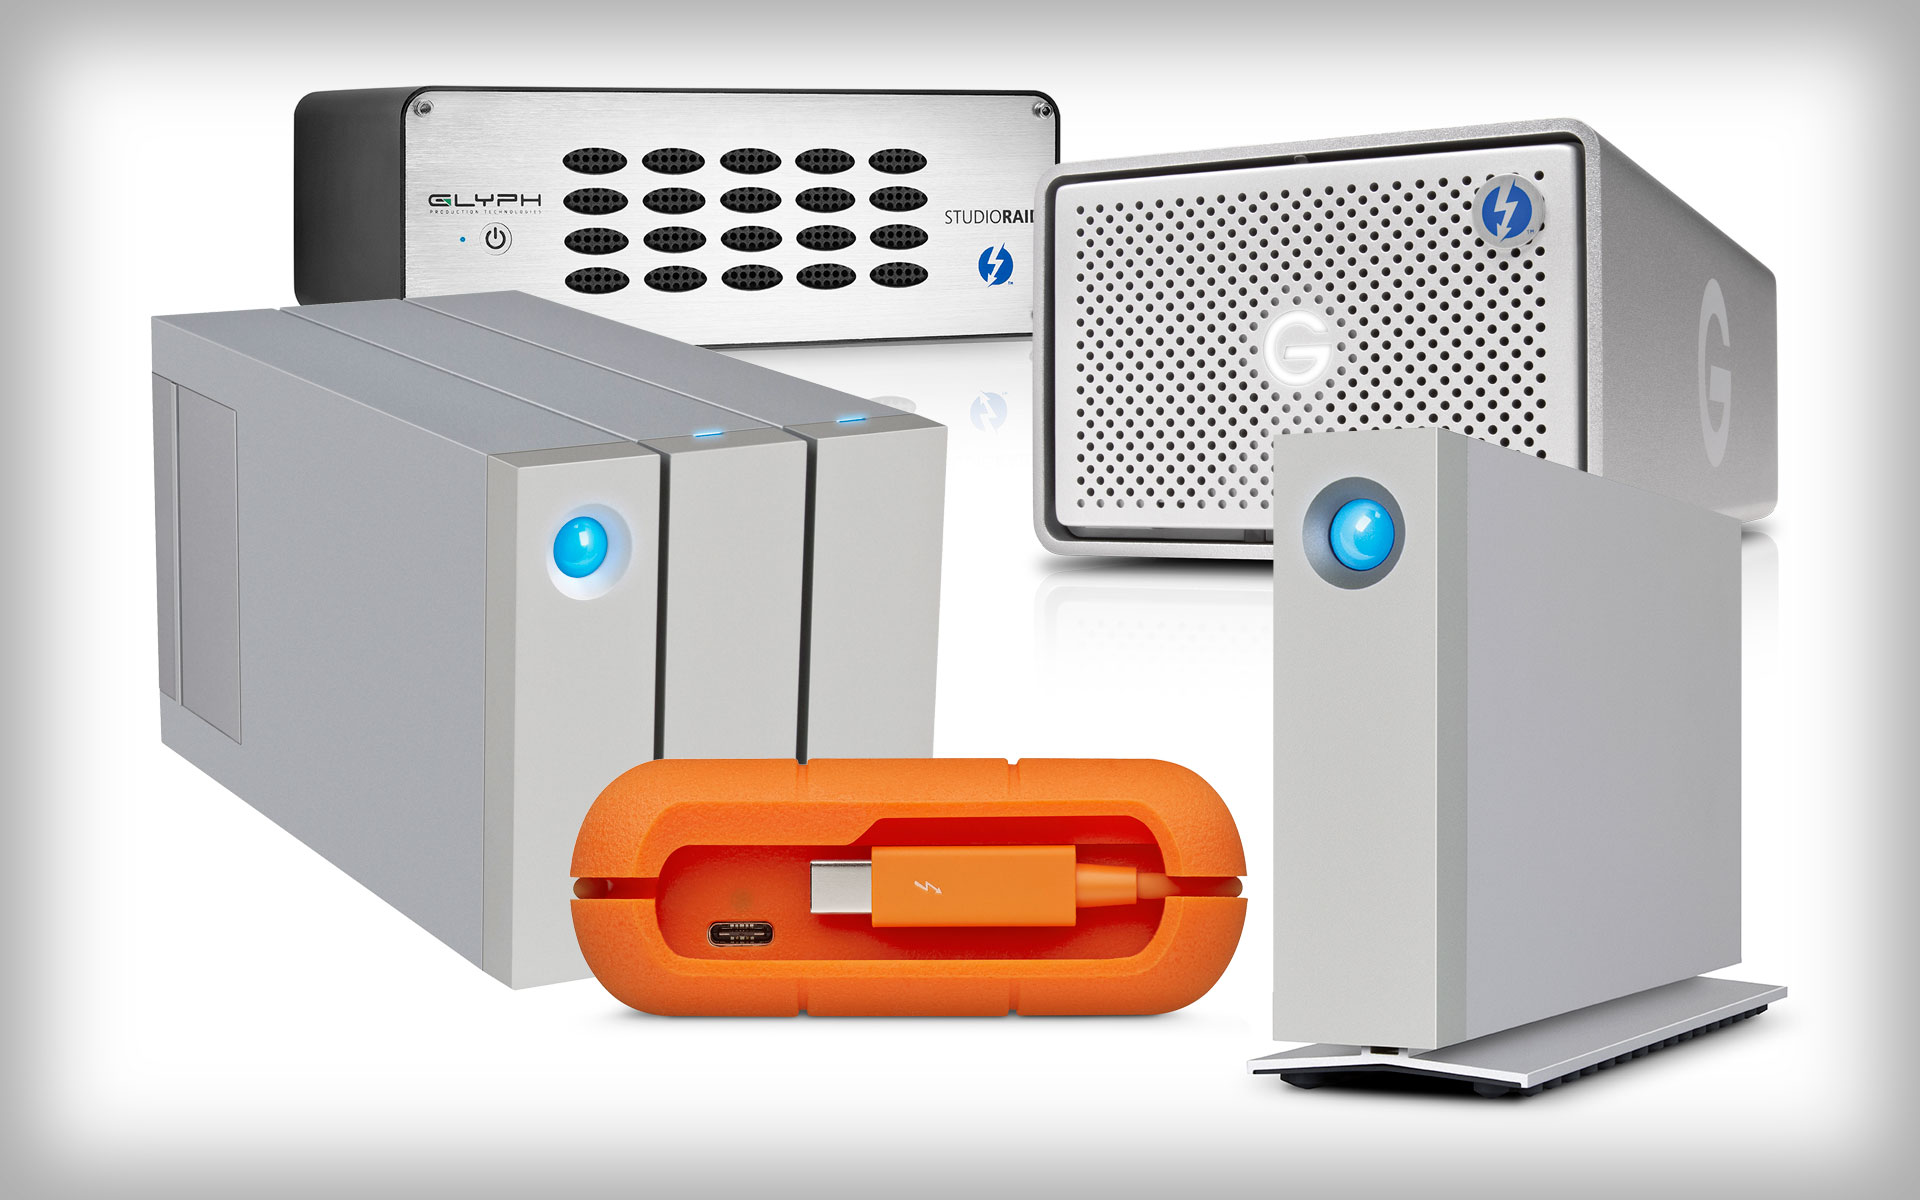 A selection of Thunderbolt Hard Drives